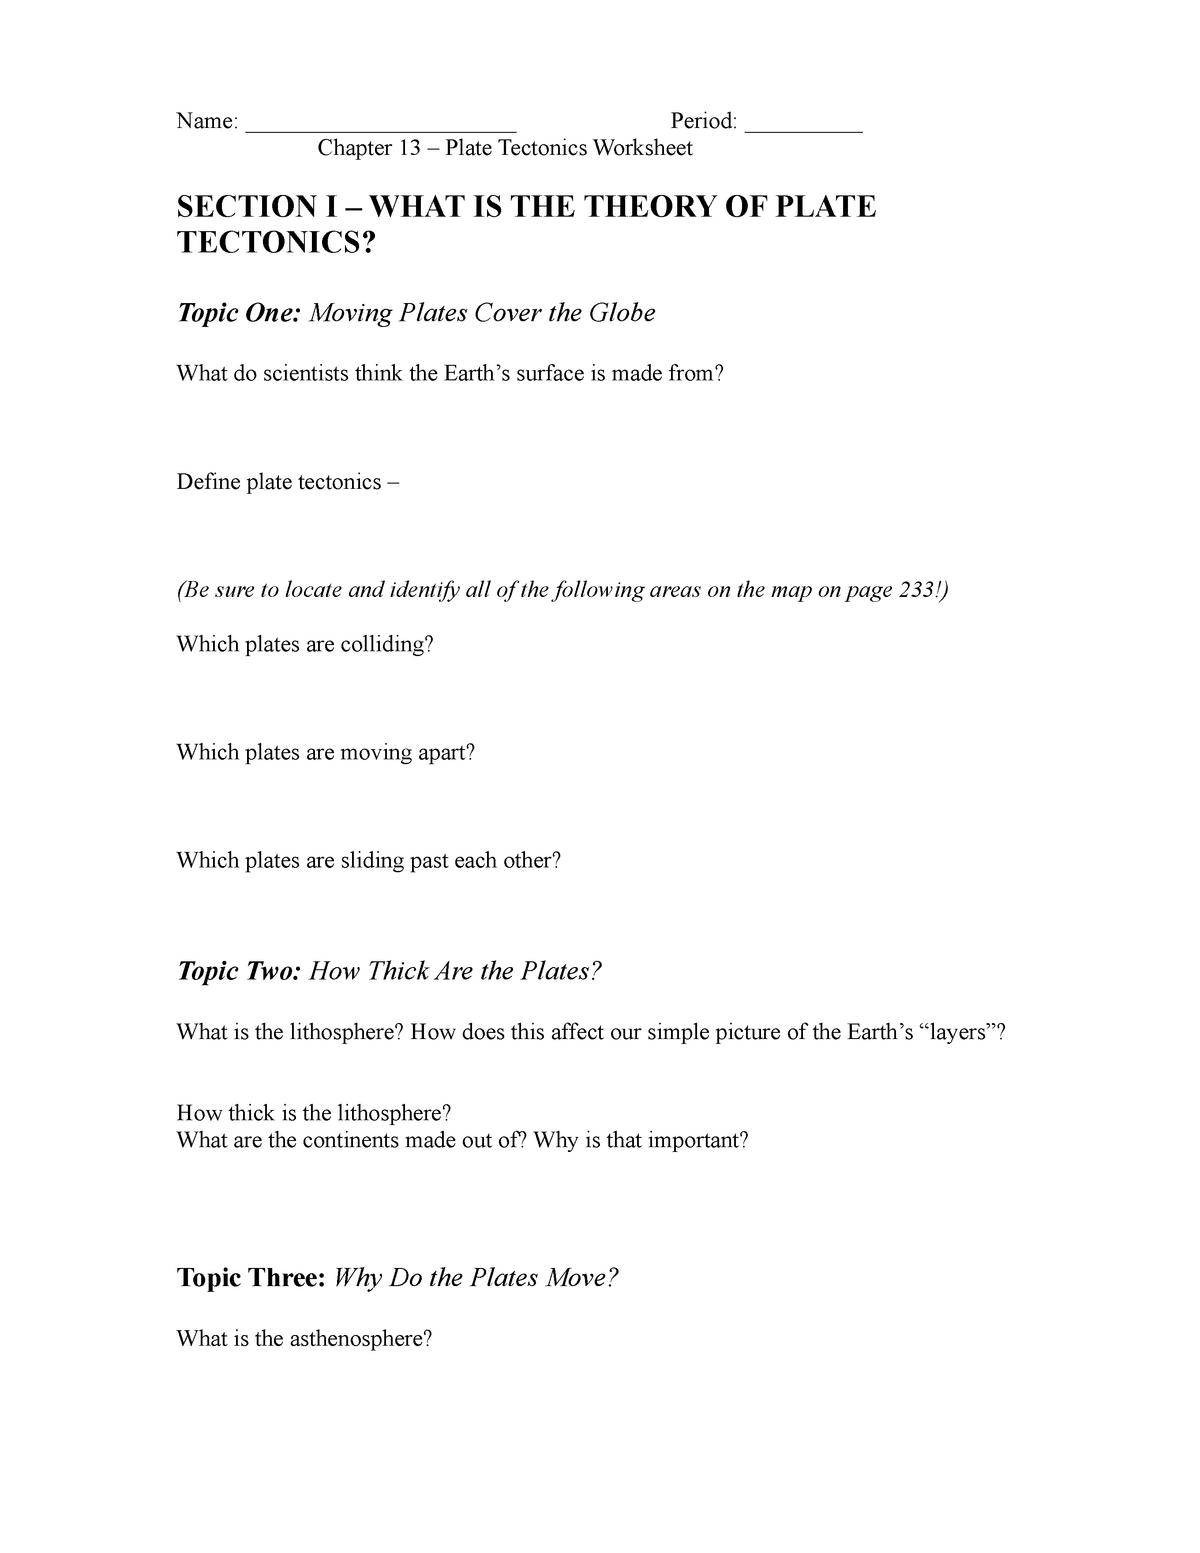 Chapter 13 Plate Tectonics Worksheet Name Chapter 13 Plate Tectonics Worksheetperiod Section What Is The Theory Of Plate Tectonics Topic One Moving Plates Cover Studocu [ 1553 x 1200 Pixel ]